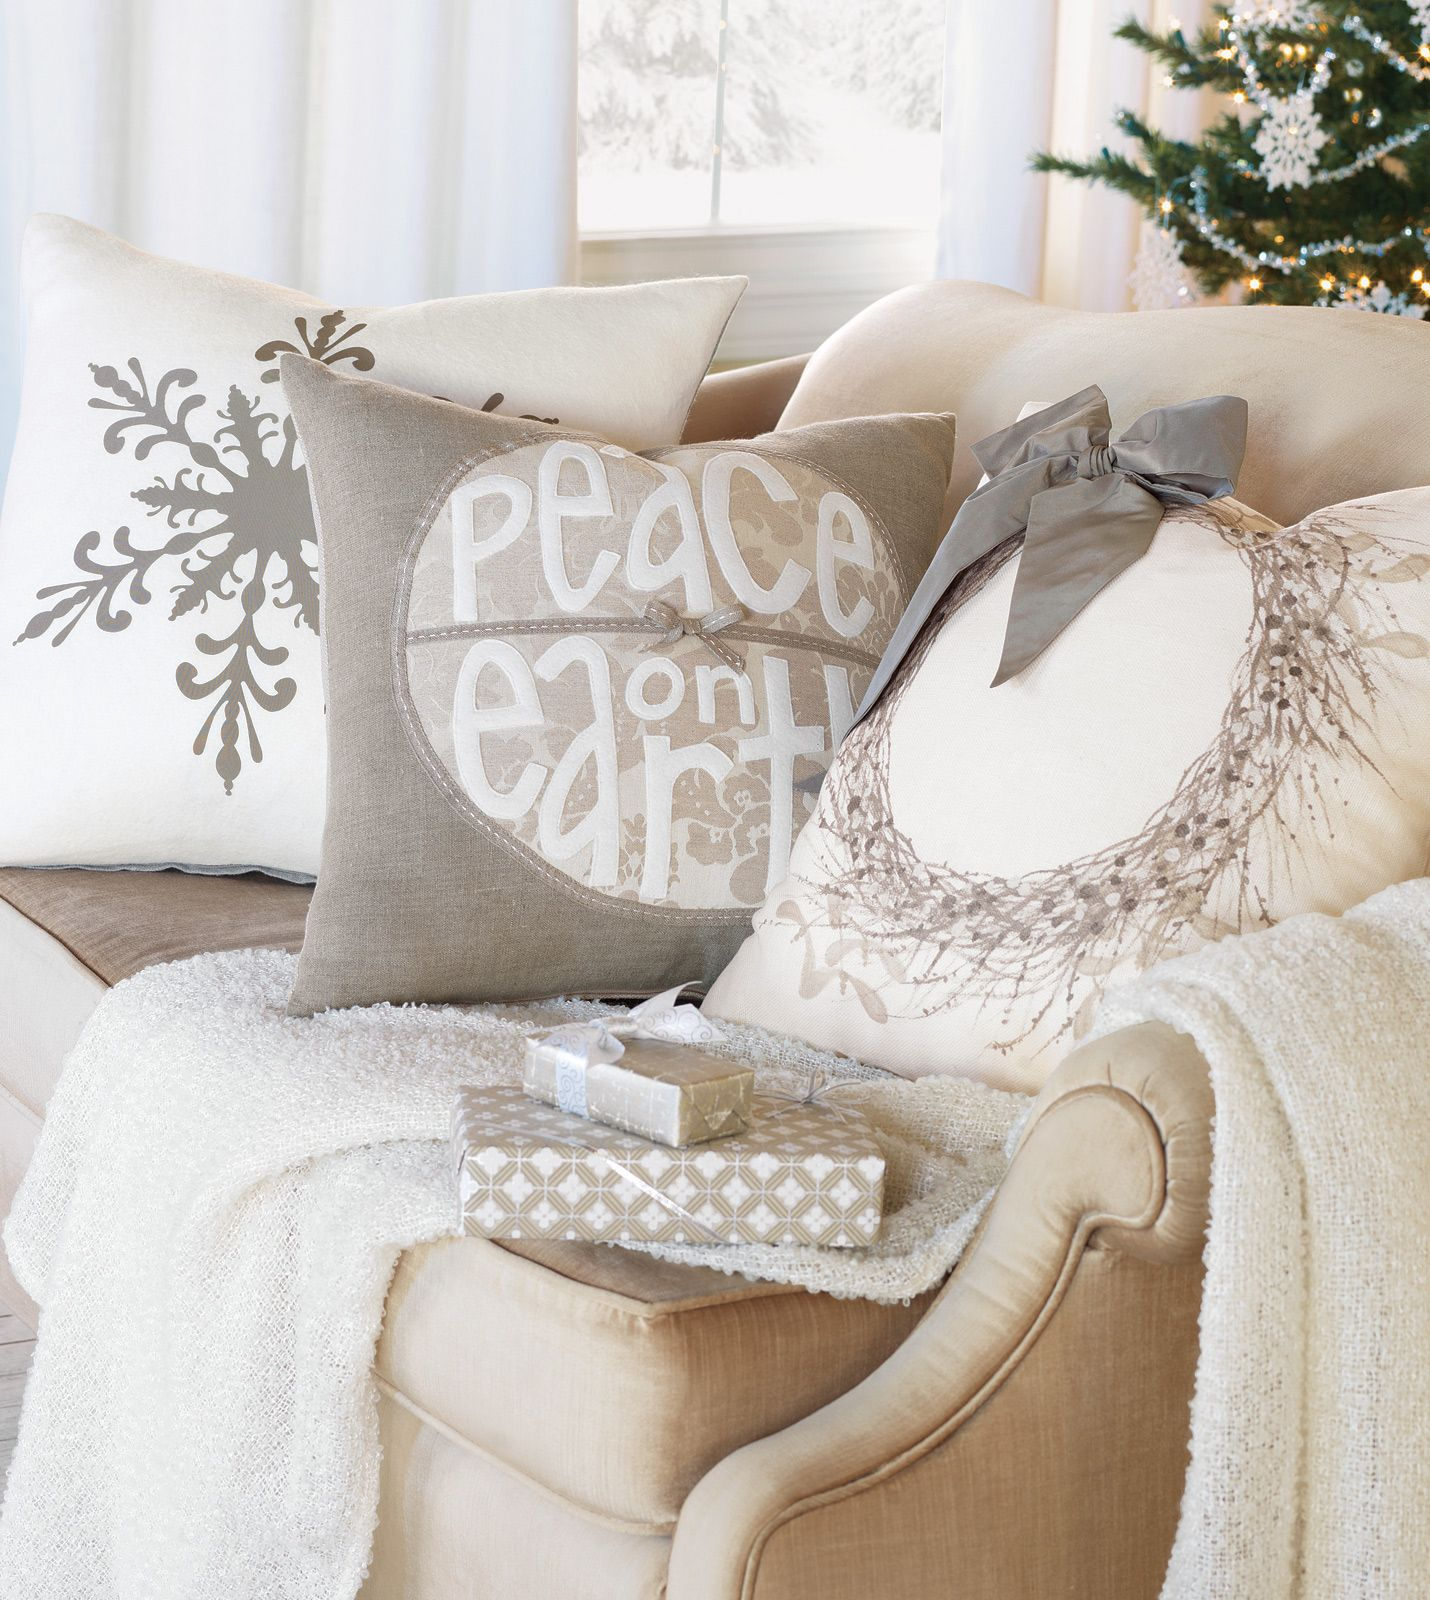 White Christmas With Images Winter White Decor Holiday Pillows Christmas Pillows